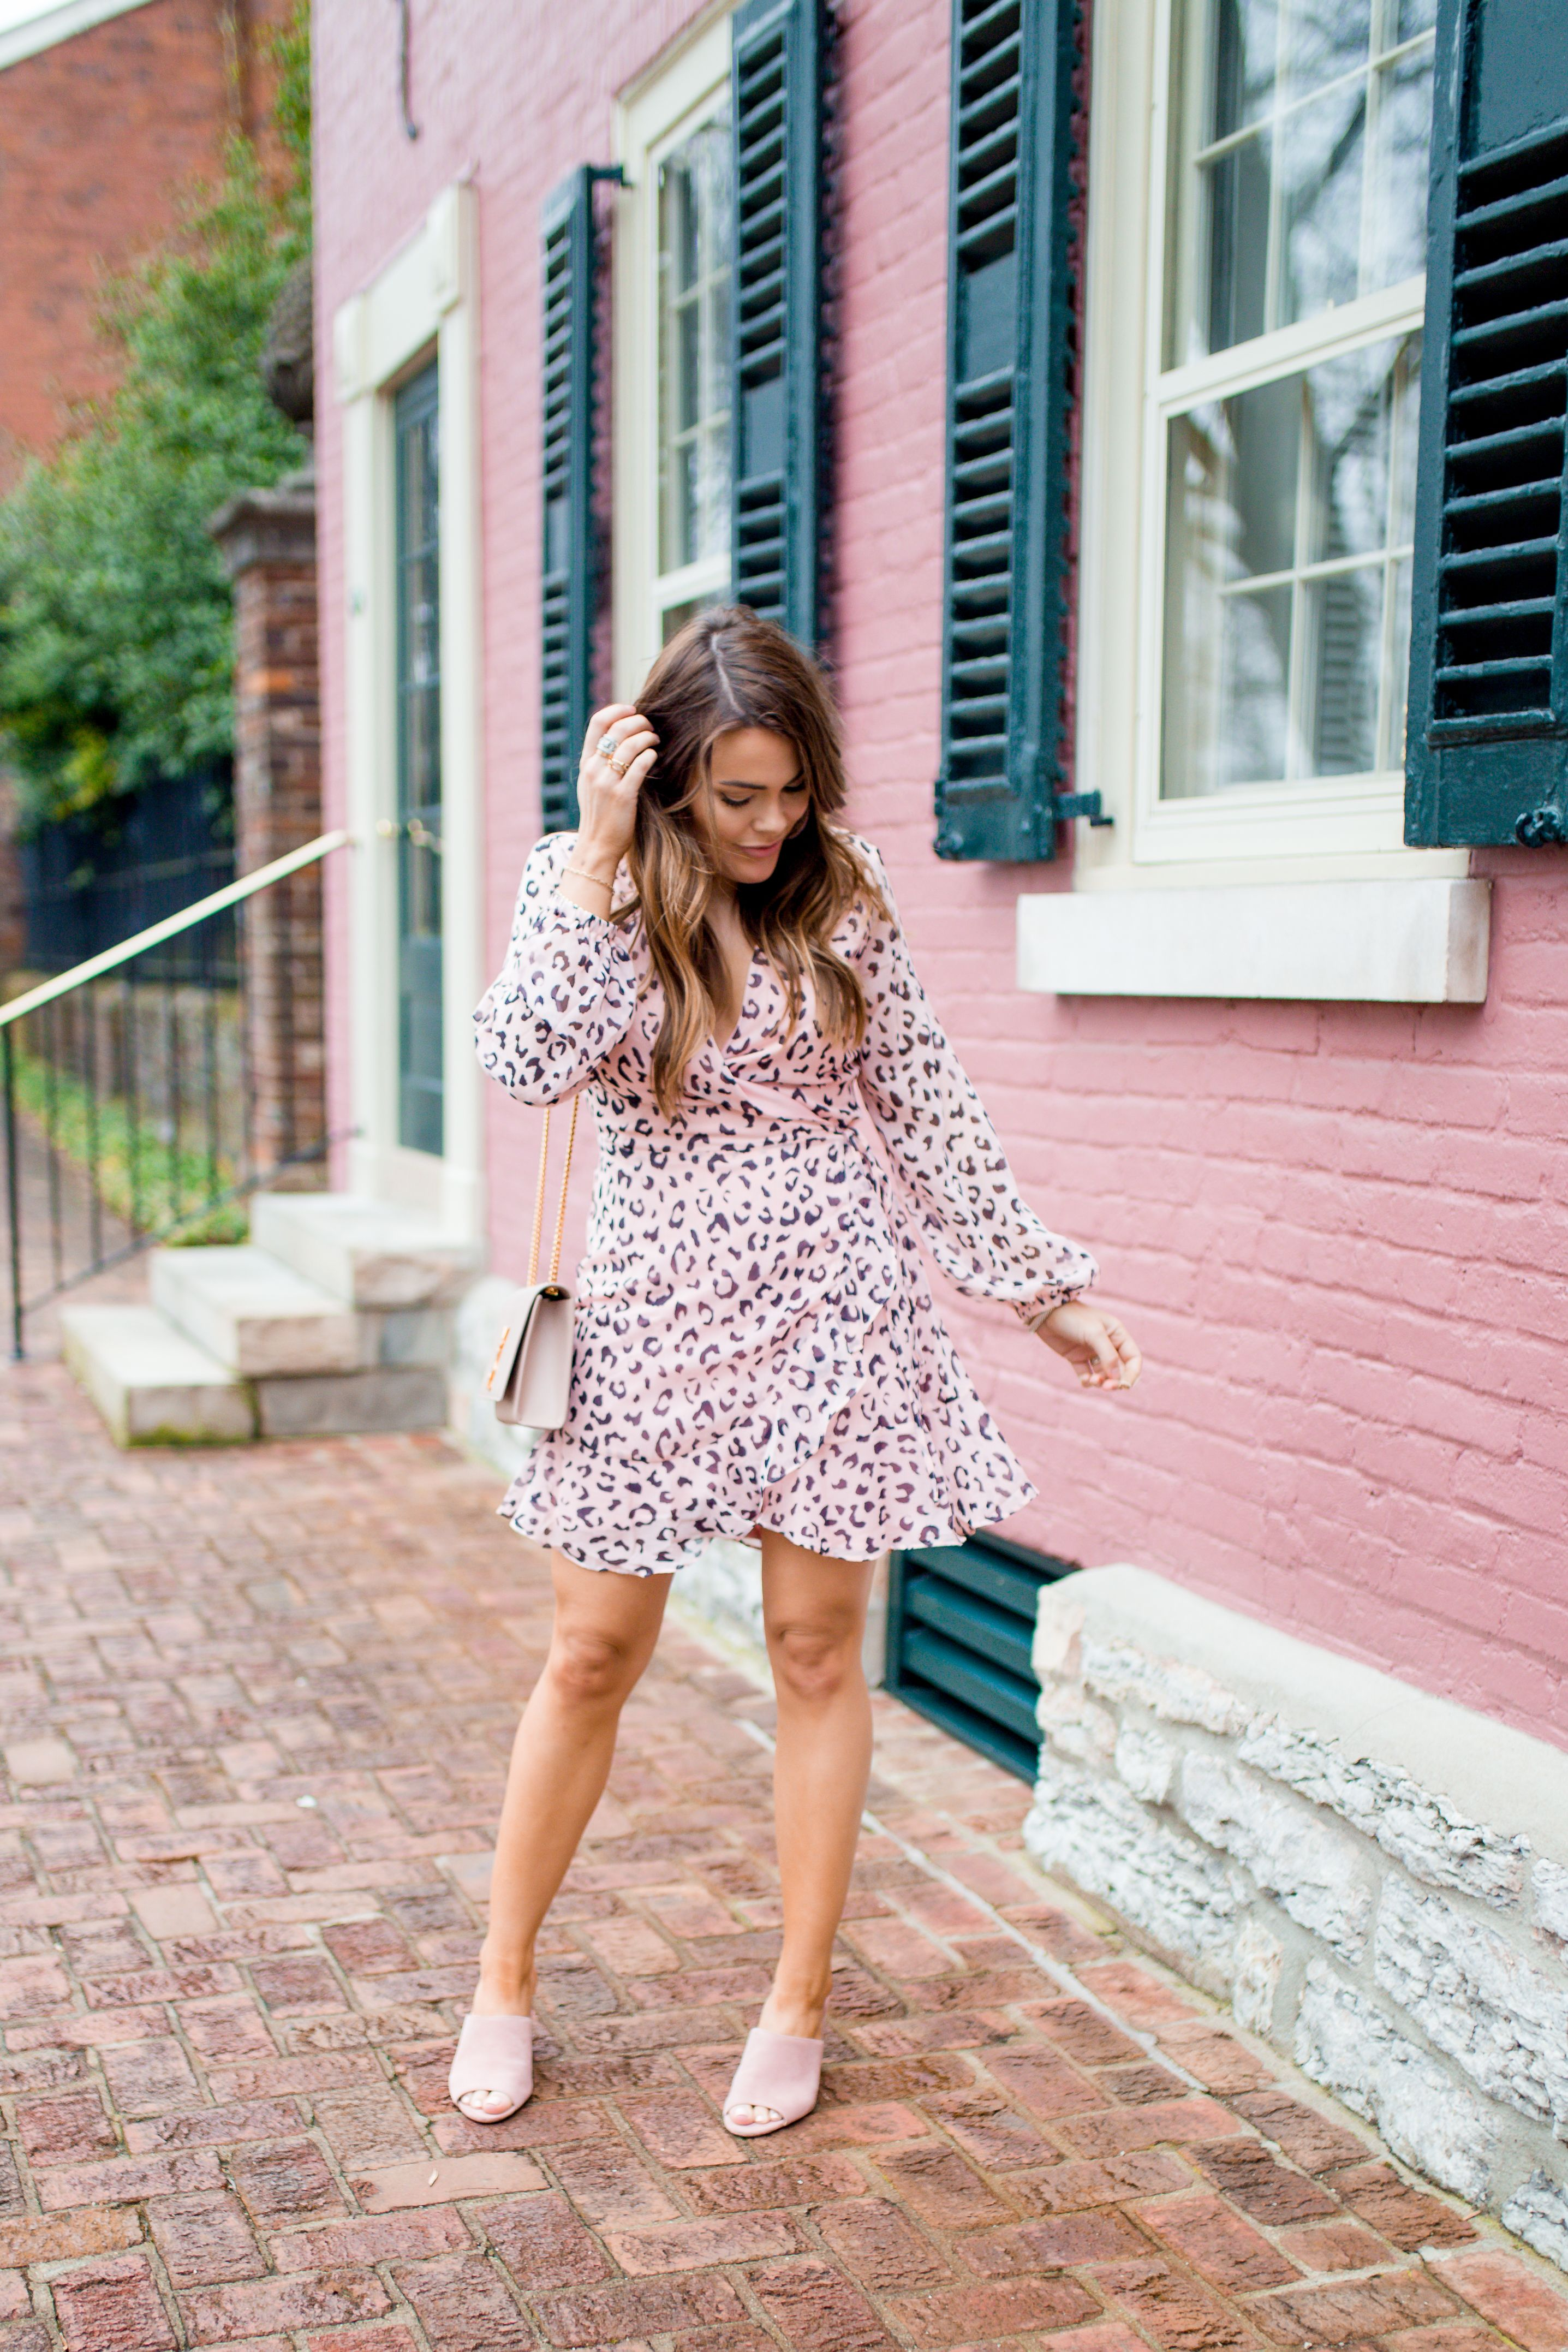 The $23 Dress You Need for Keeneland - Glitter & Gingham  Autumn